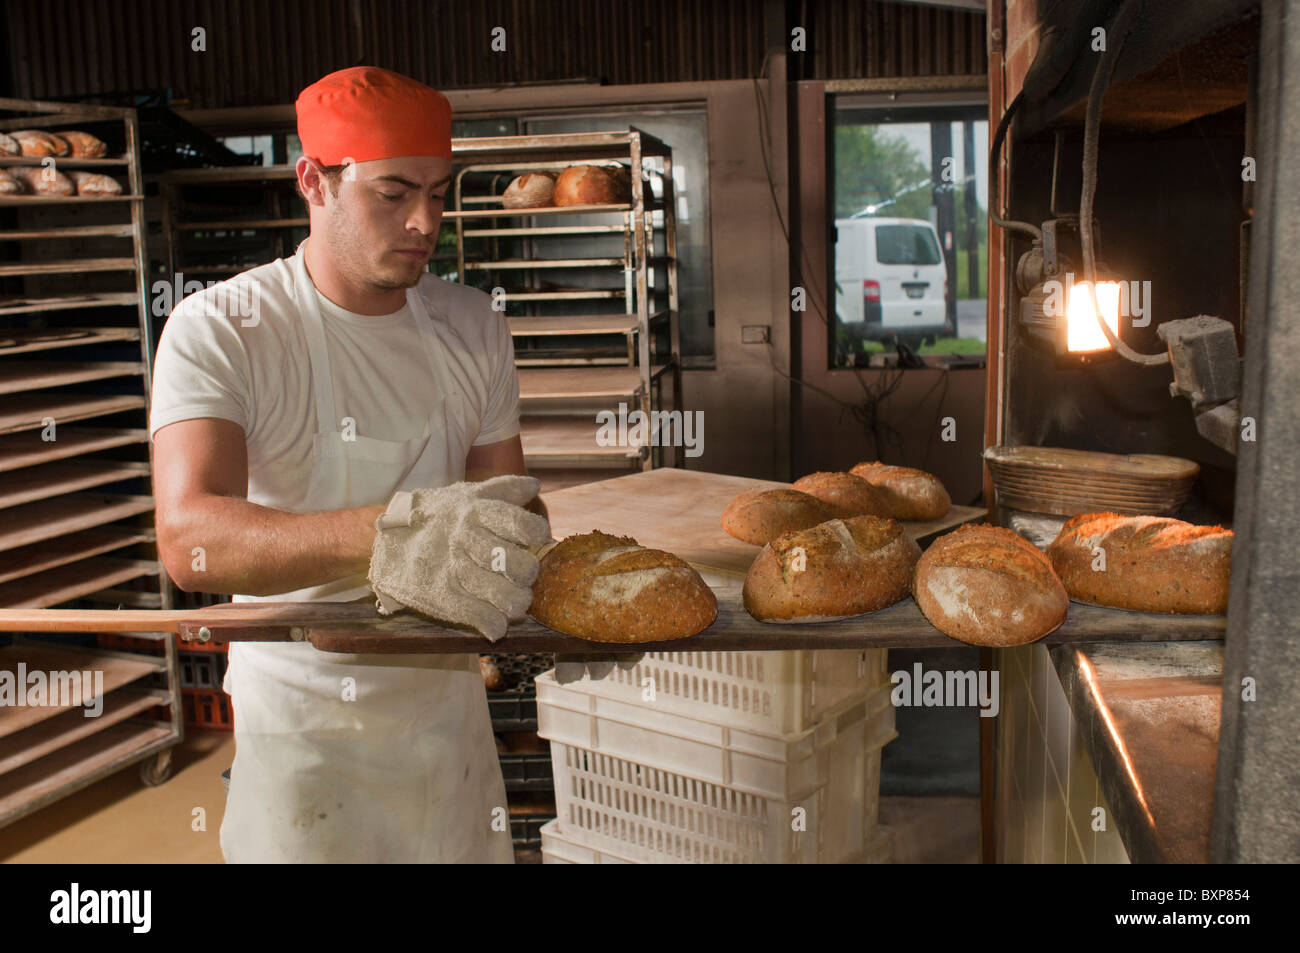 Artisan sourdough baker removing freshly baked bread from a woodfired oven - Stock Image